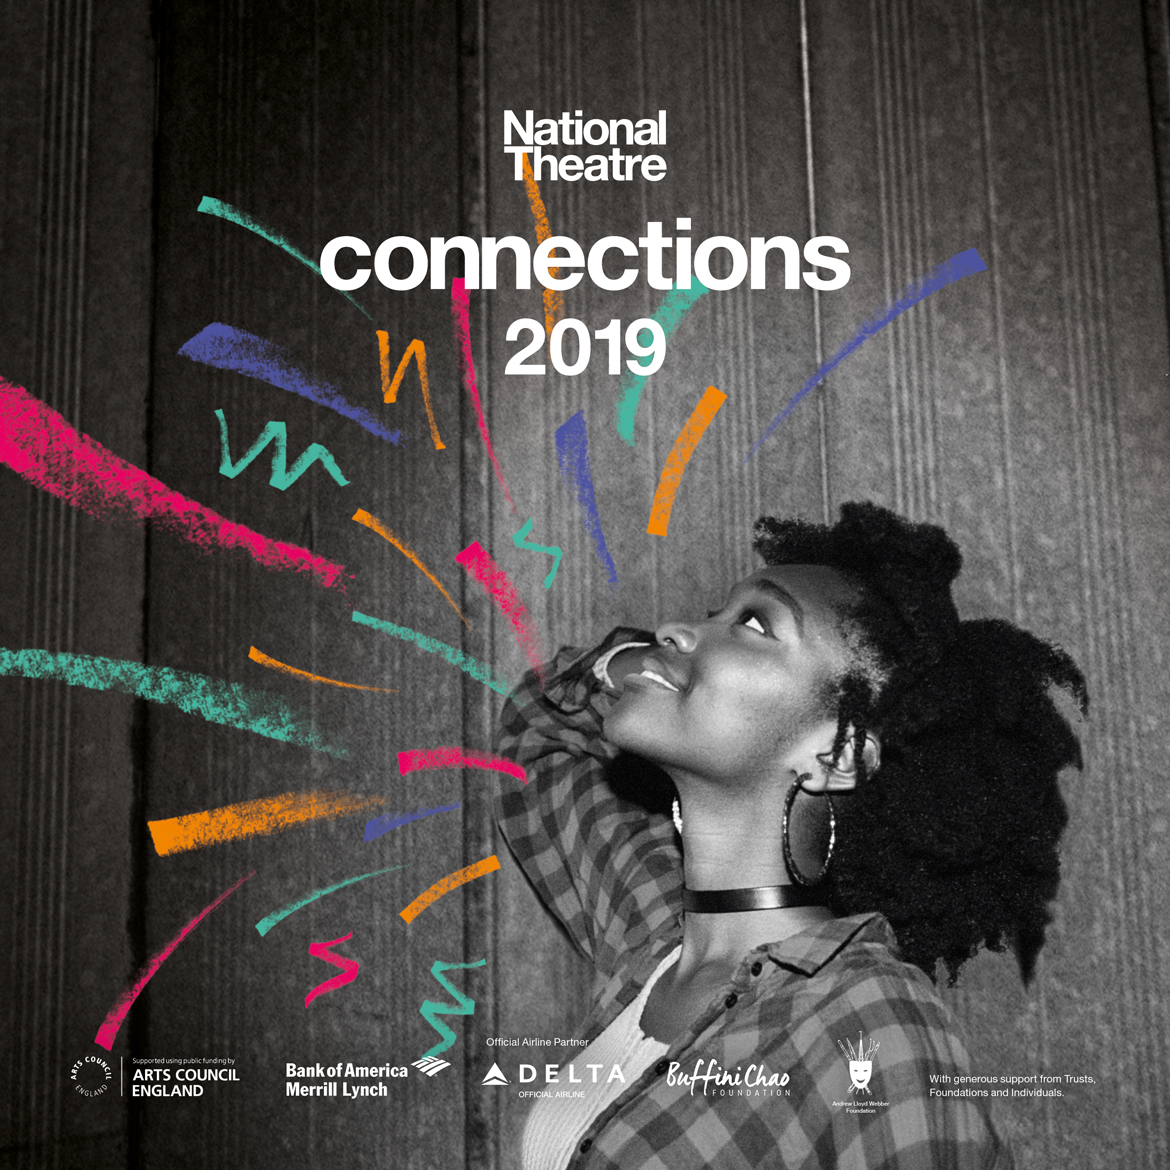 National Theatre Connections 2019 Royal Amp Derngate